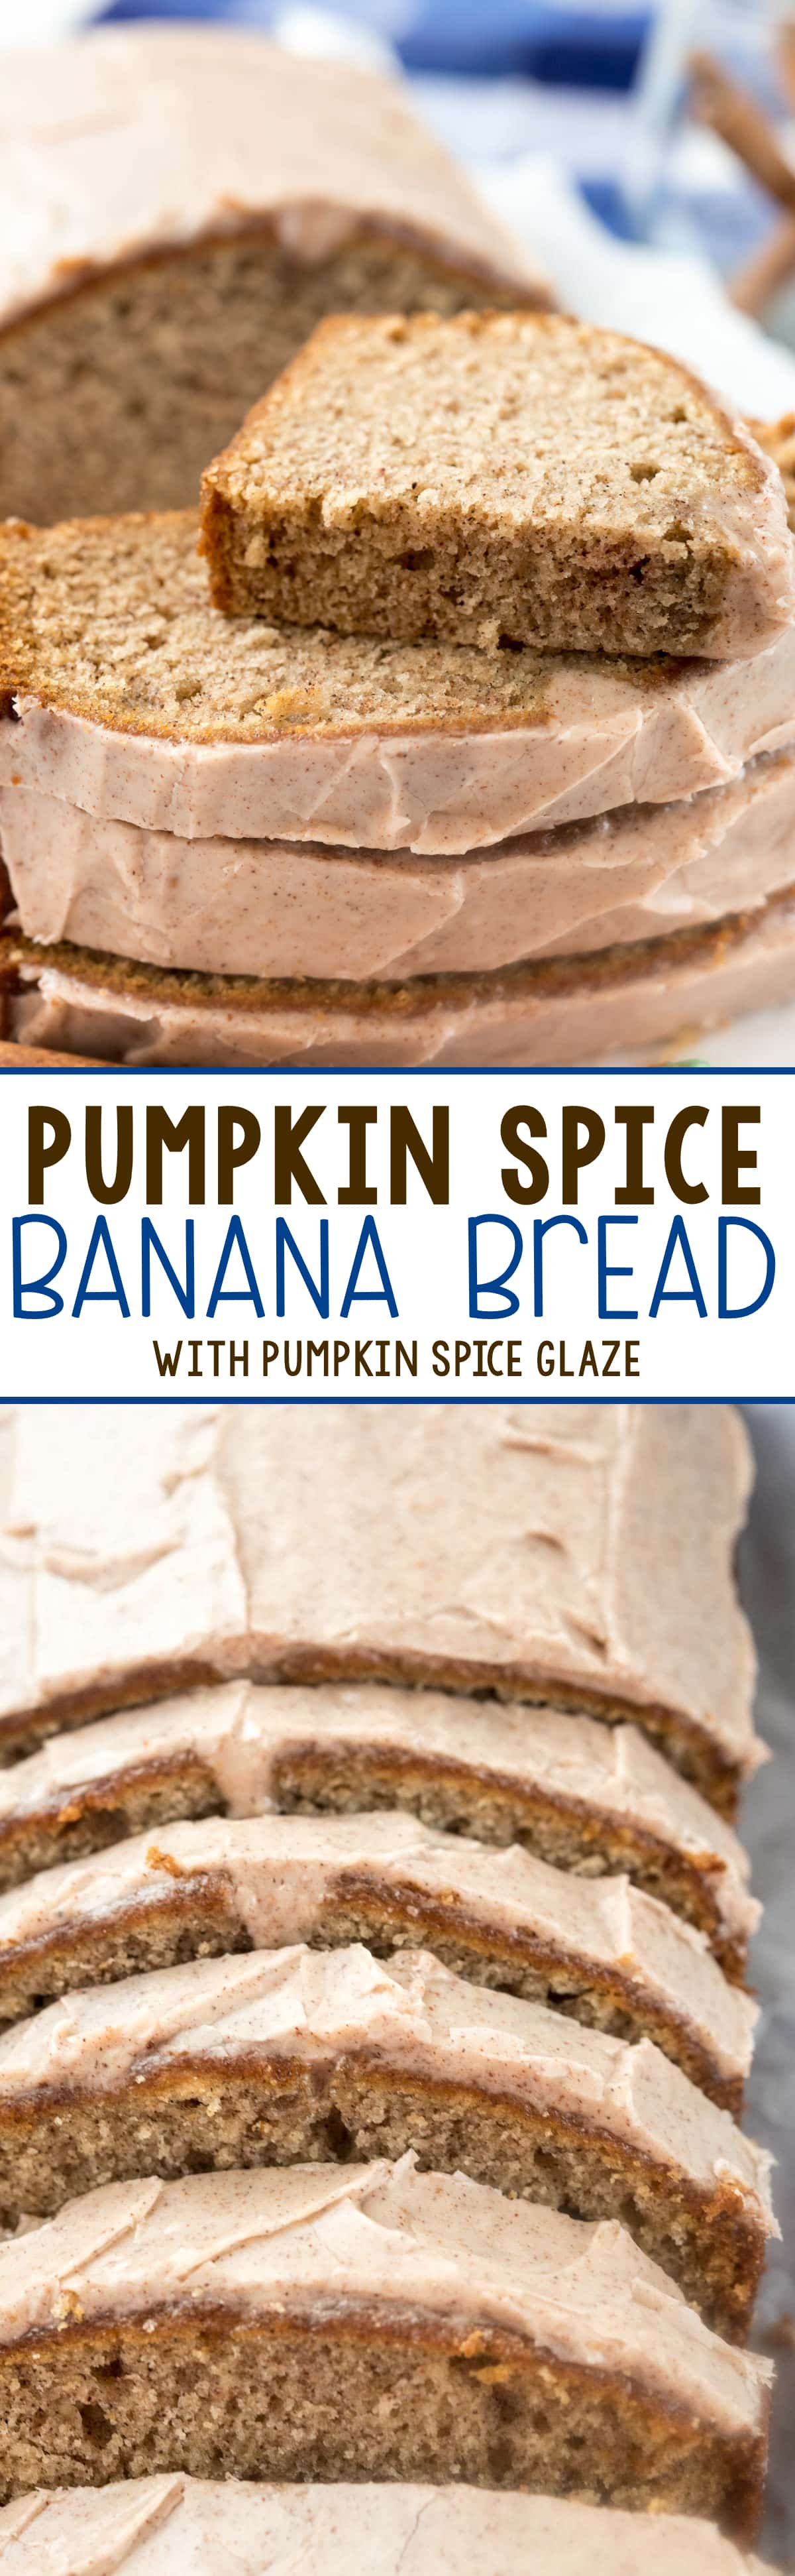 Pumpkin Spice Banana Bread - this easy banana bread is FILLED with pumpkin spice and coated with a pumpkin spice glaze!